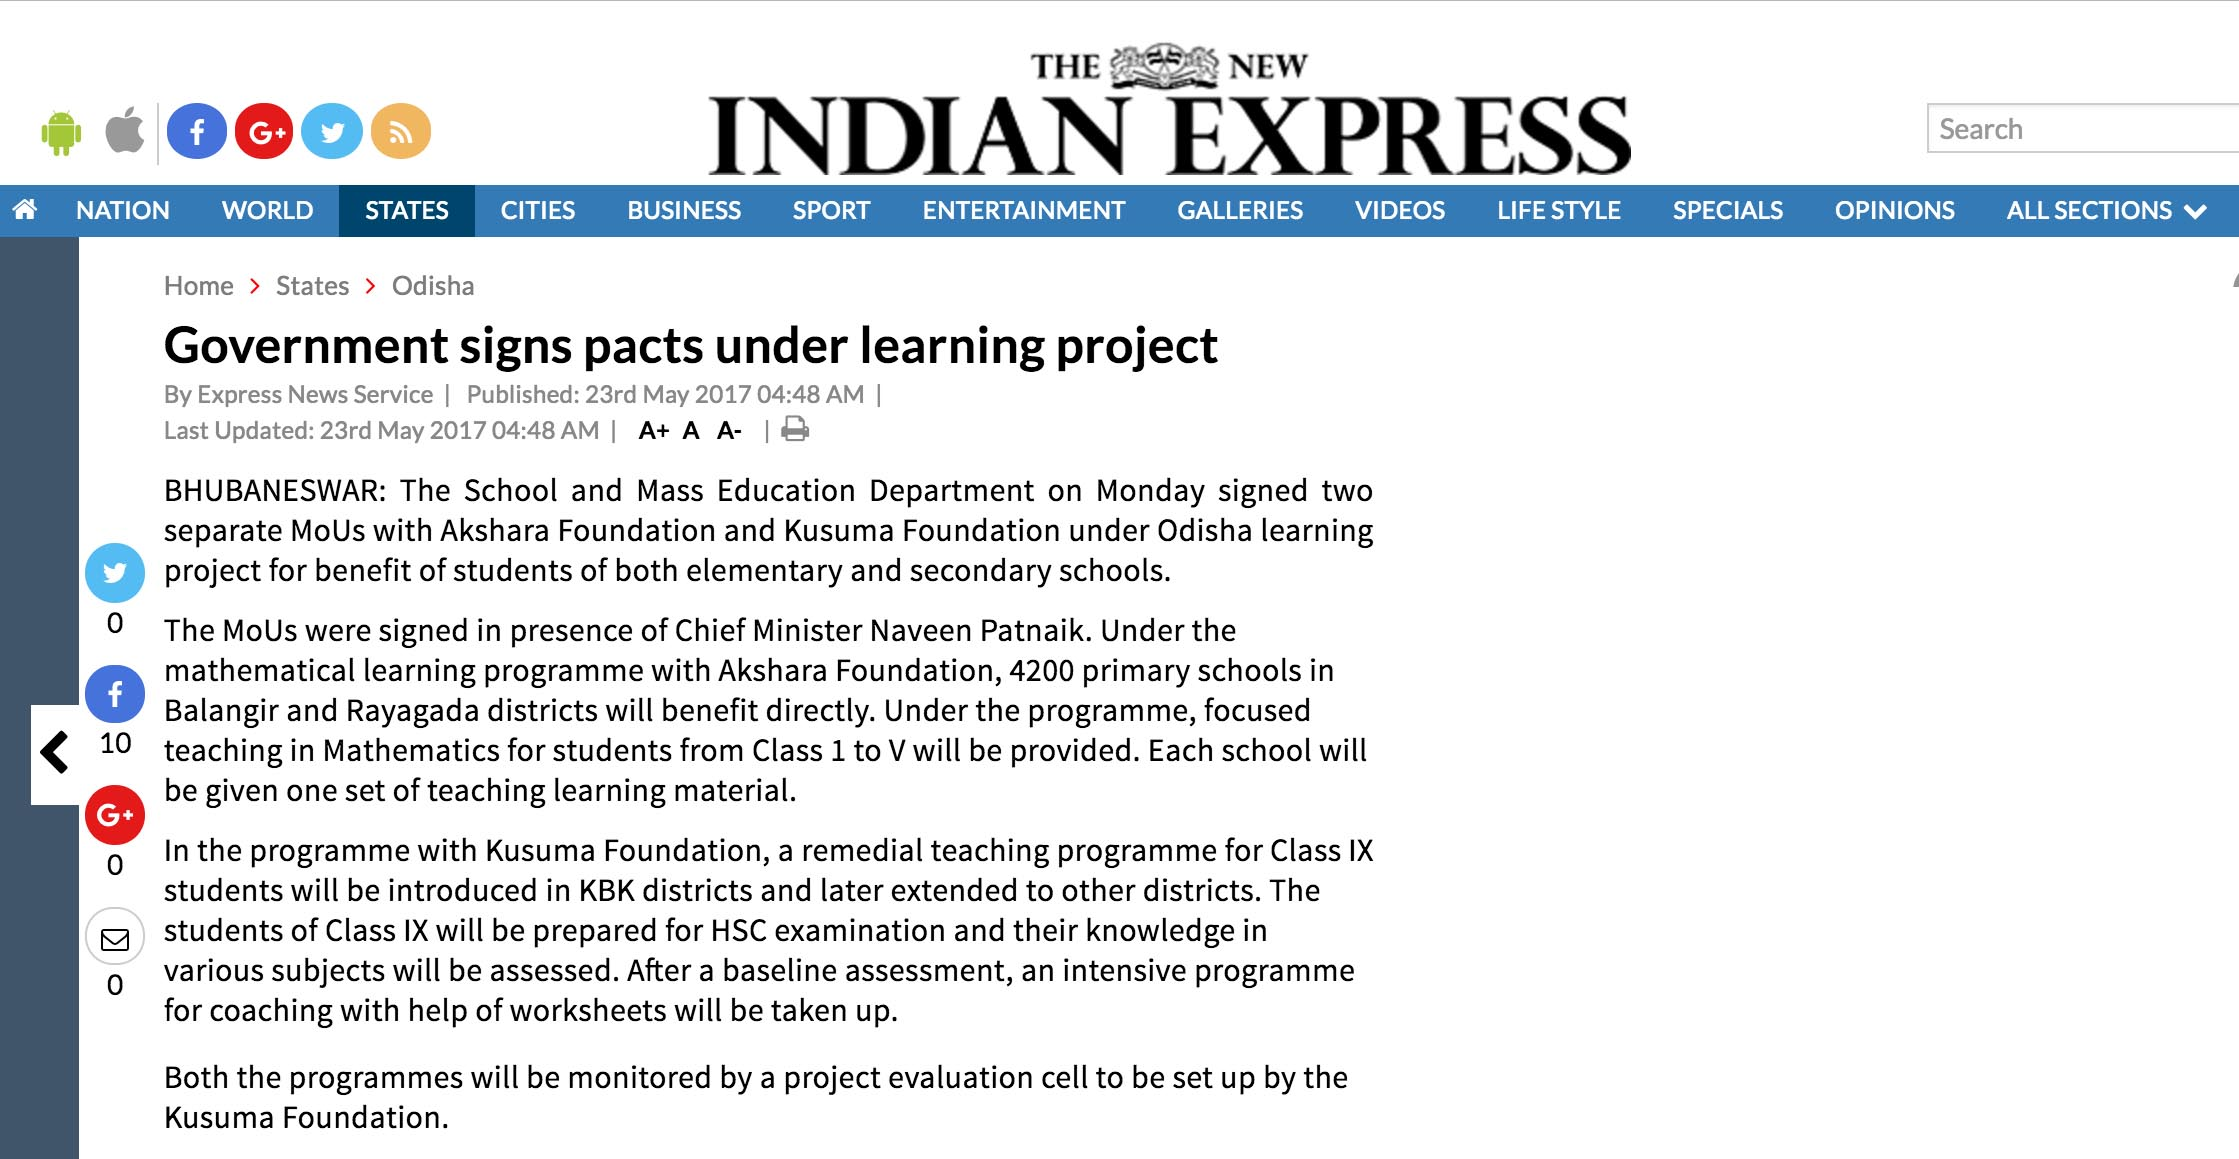 Government signs pacts under learning project